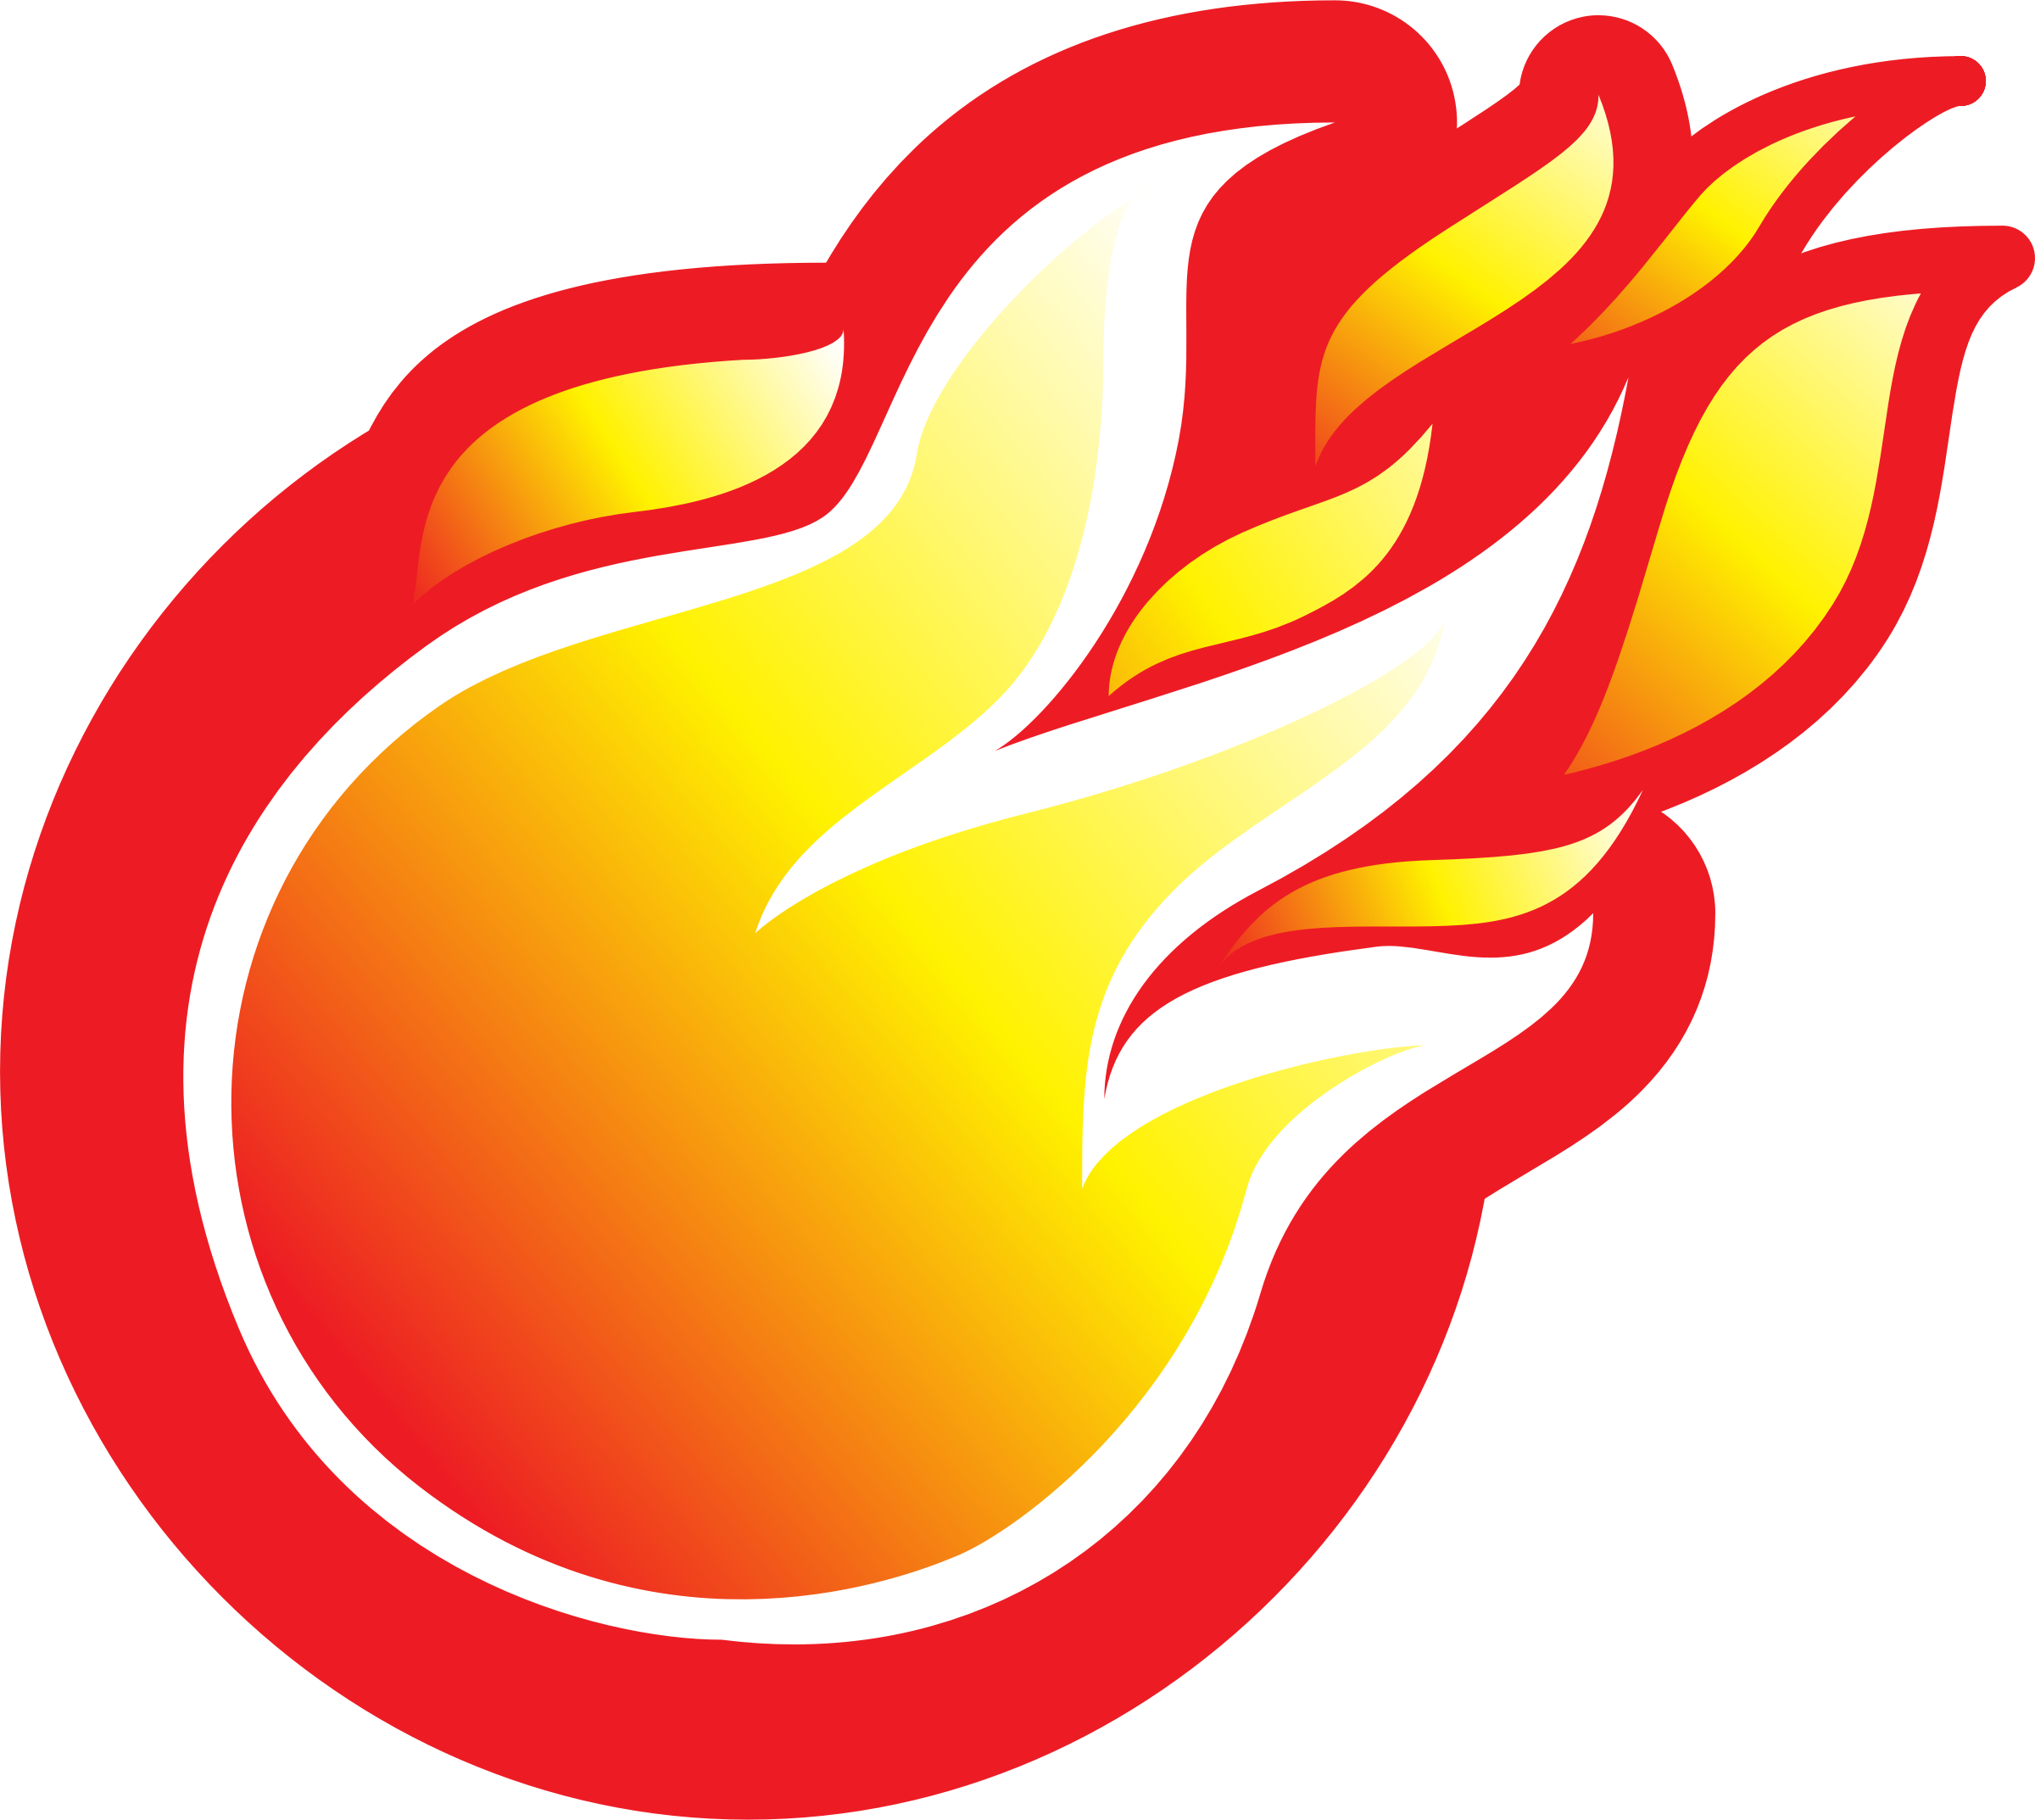 svg royalty free download Flame image ruby logo. Breath clipart fire